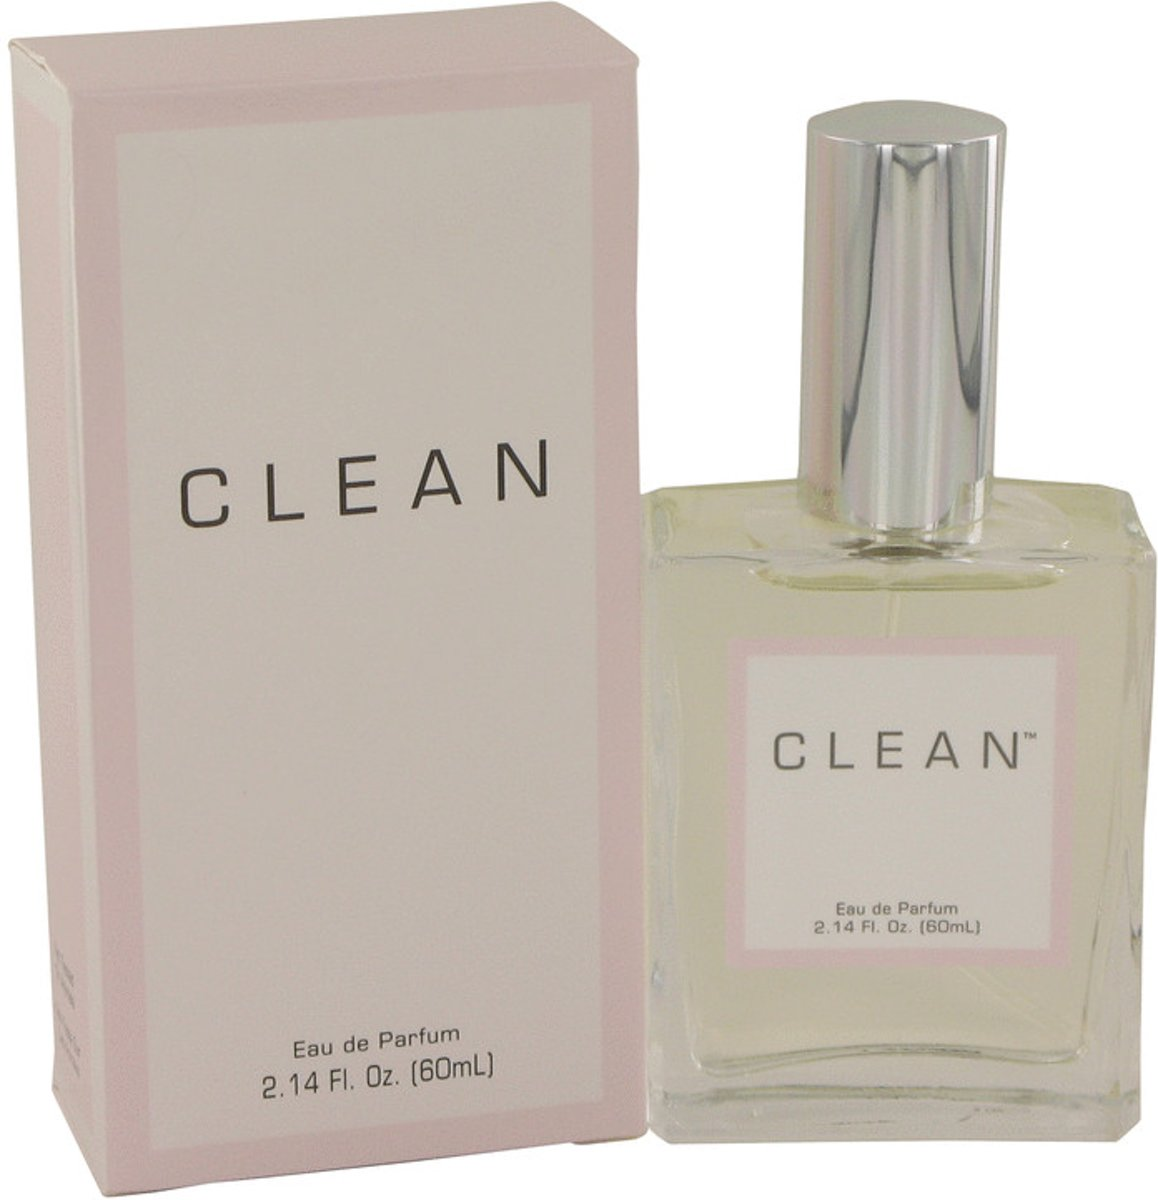 Clean Original Eau de Parfum Spray 60 ml